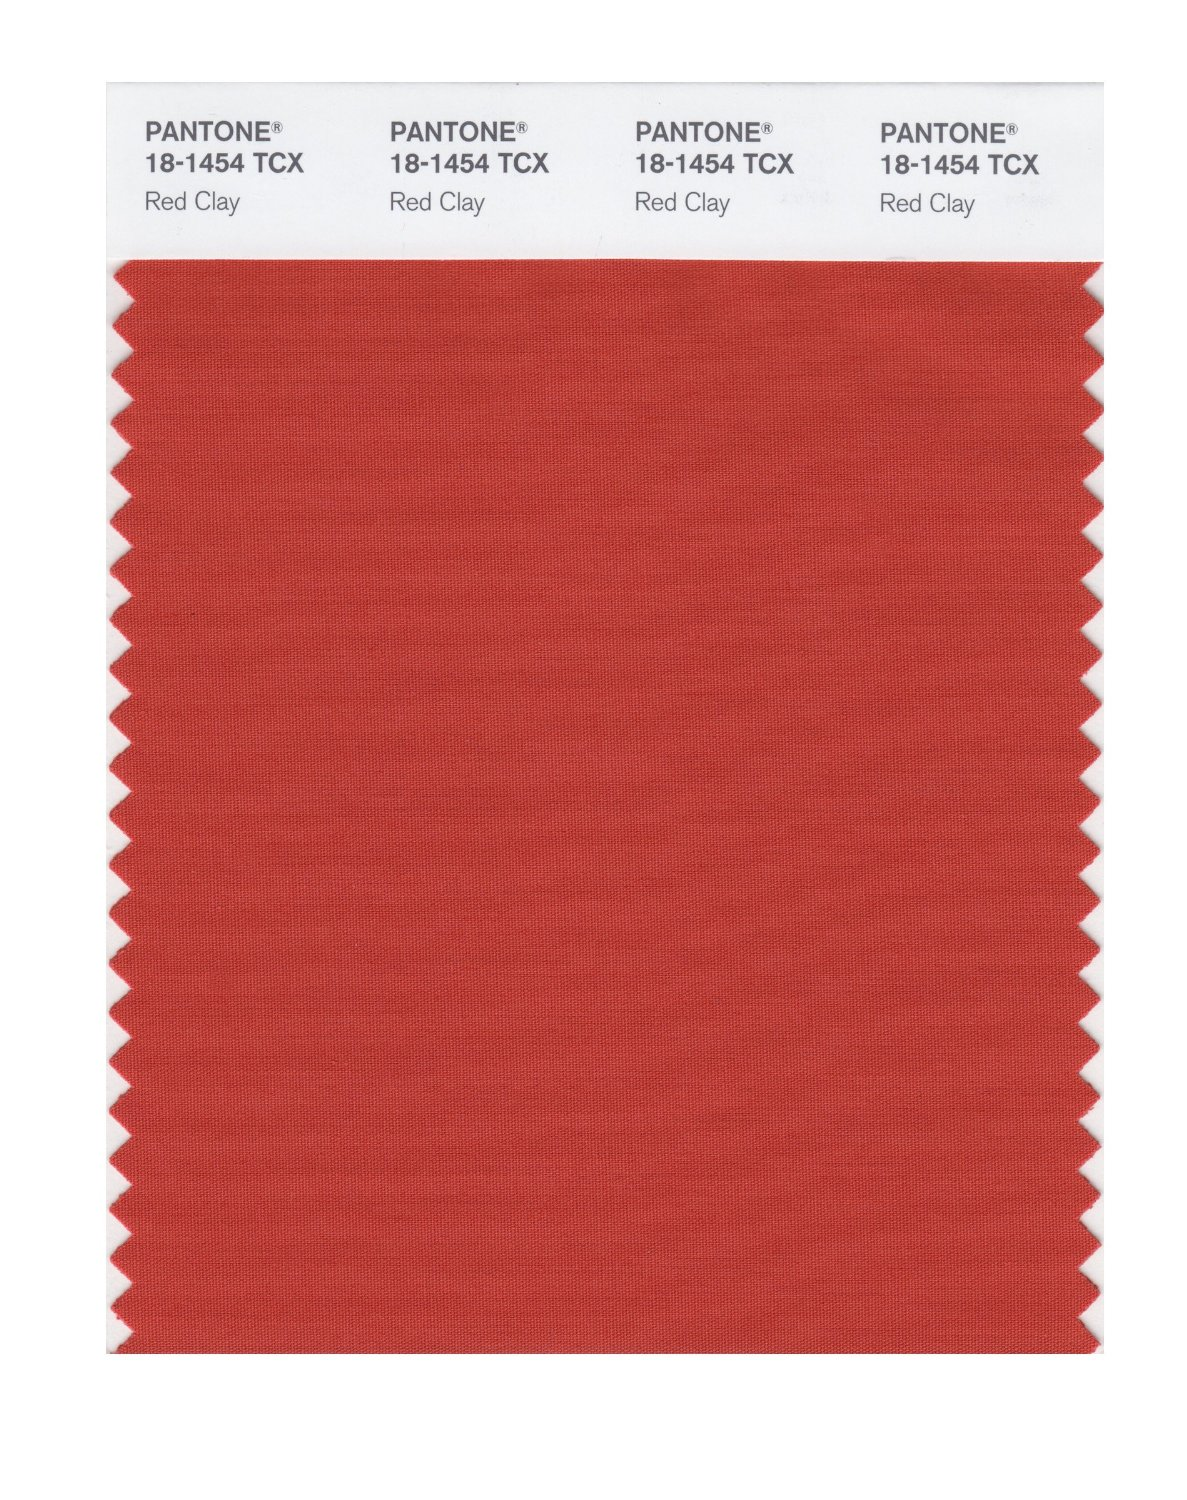 Pantone Smart Swatch 18-1454 Red Clay